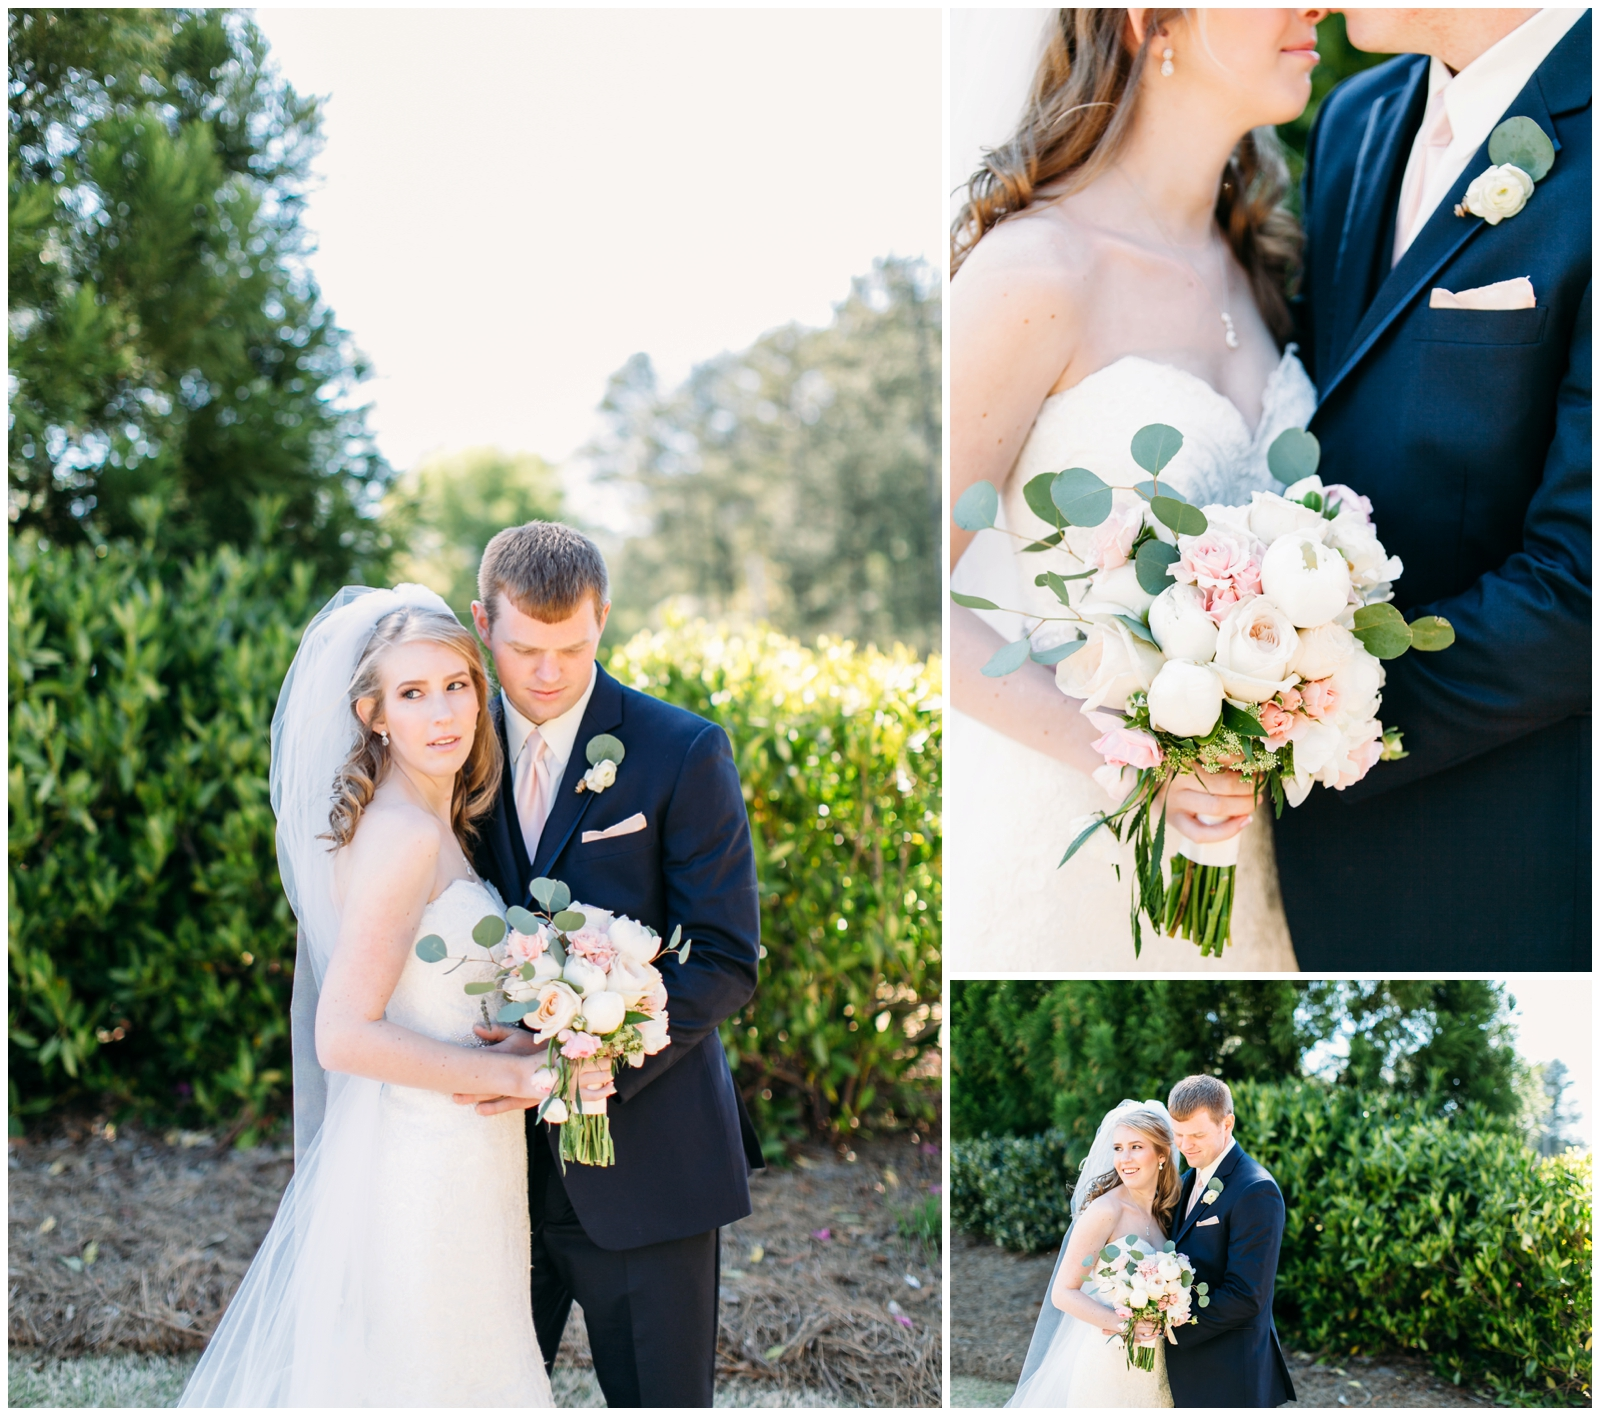 Morgan & Kyle_RoswellWedding_ArdentStory_0011